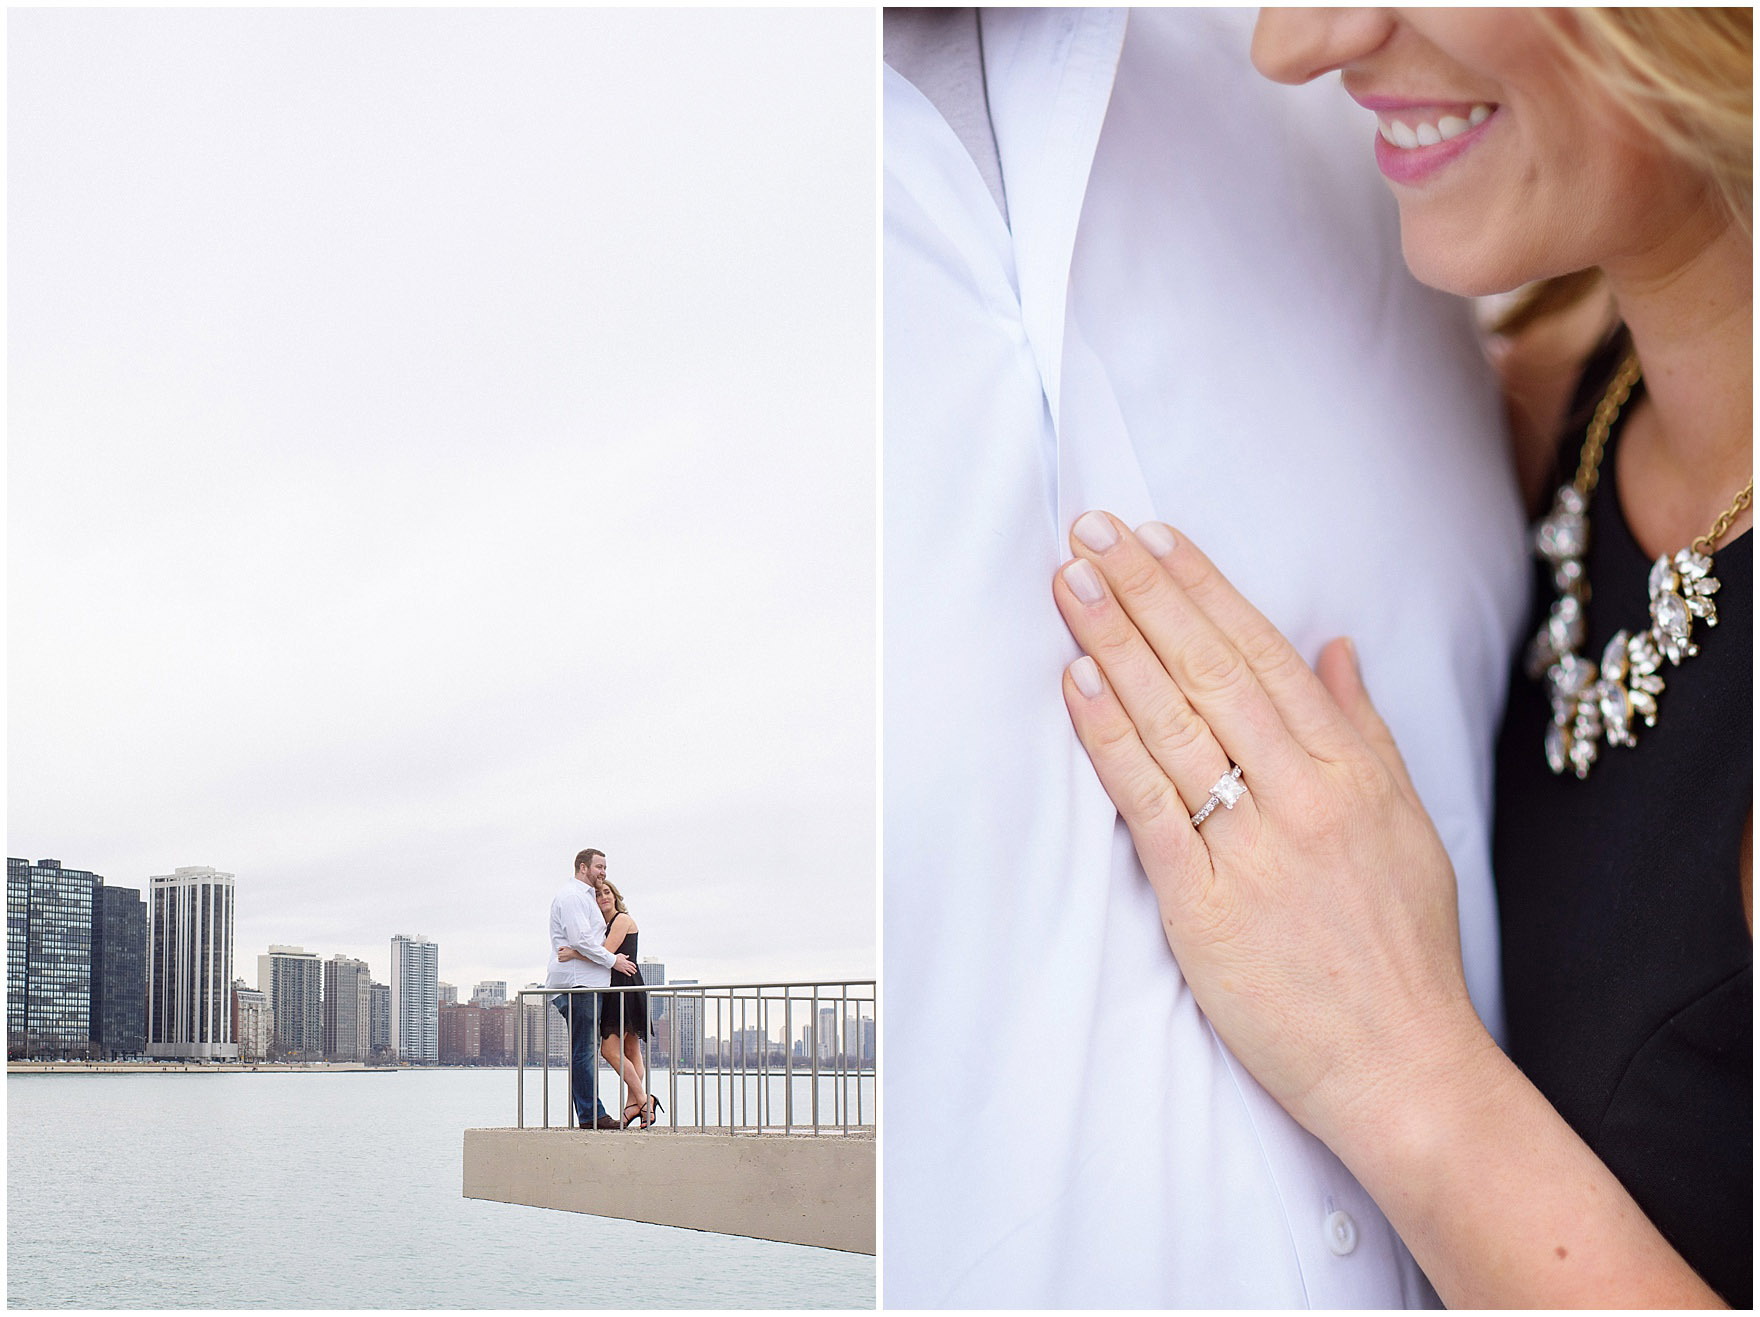 A bride-to-be shows her engagement ring at Milton Olive Park during a downtown Chicago city engagement photography session.